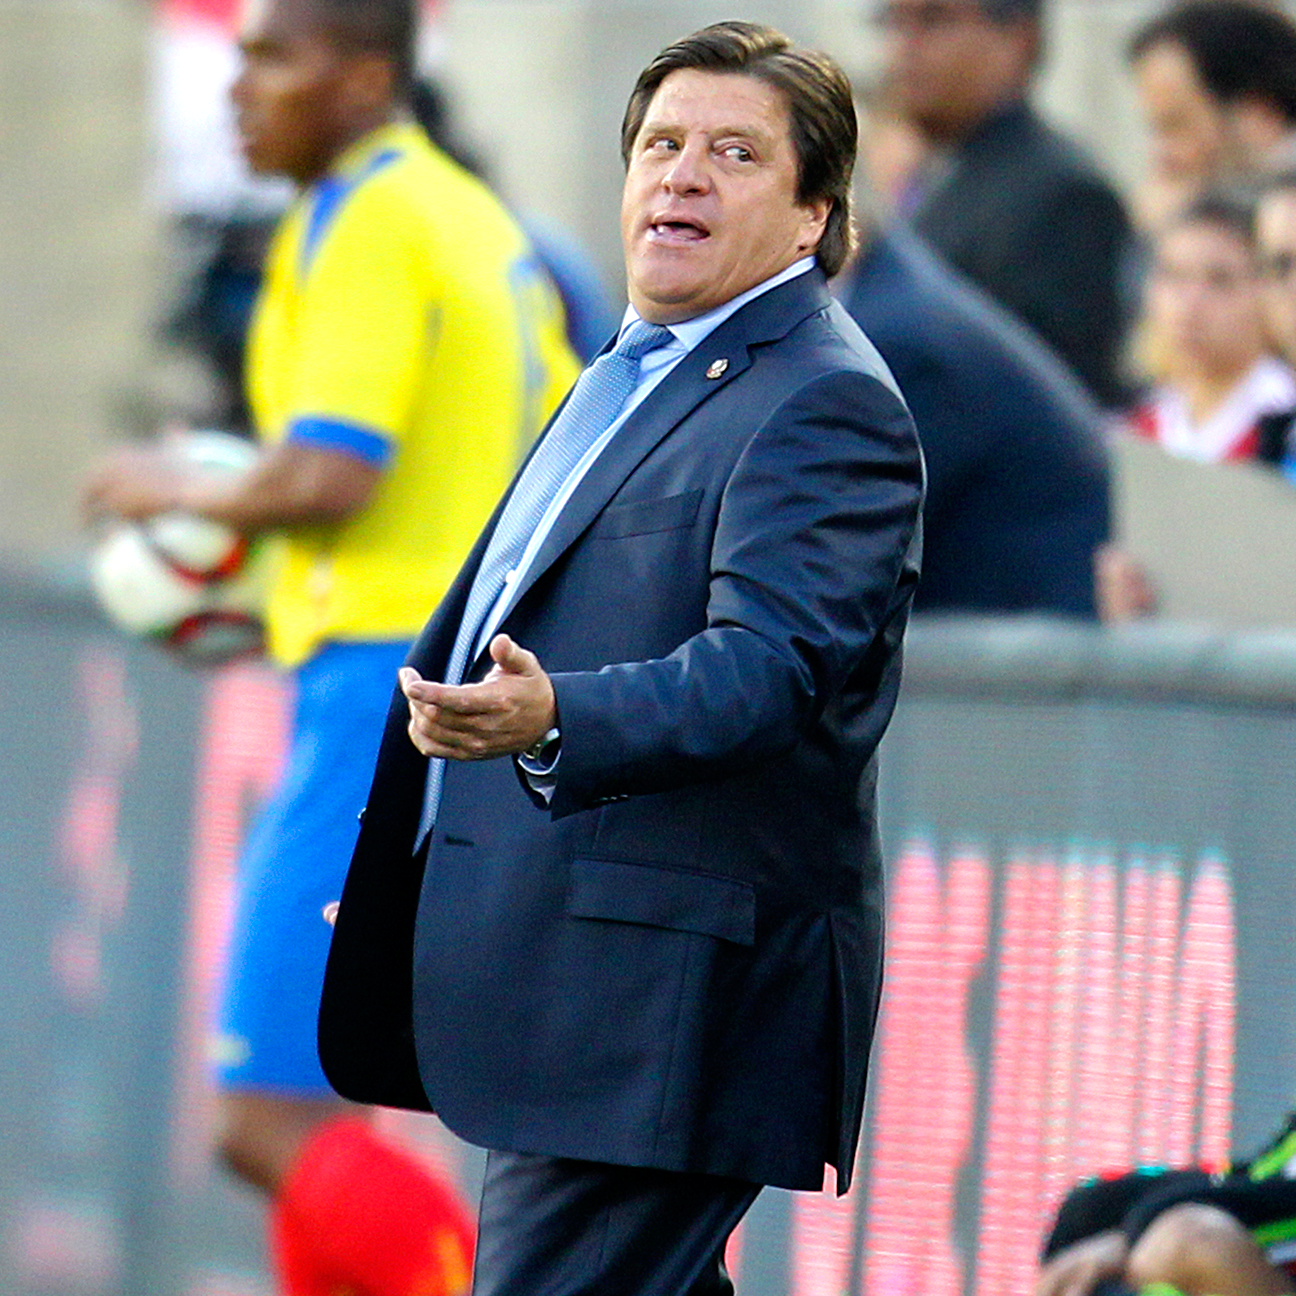 Mexico head coach Miguel Herrera has not shied away from making bold predictions about his squad at the Copa America.